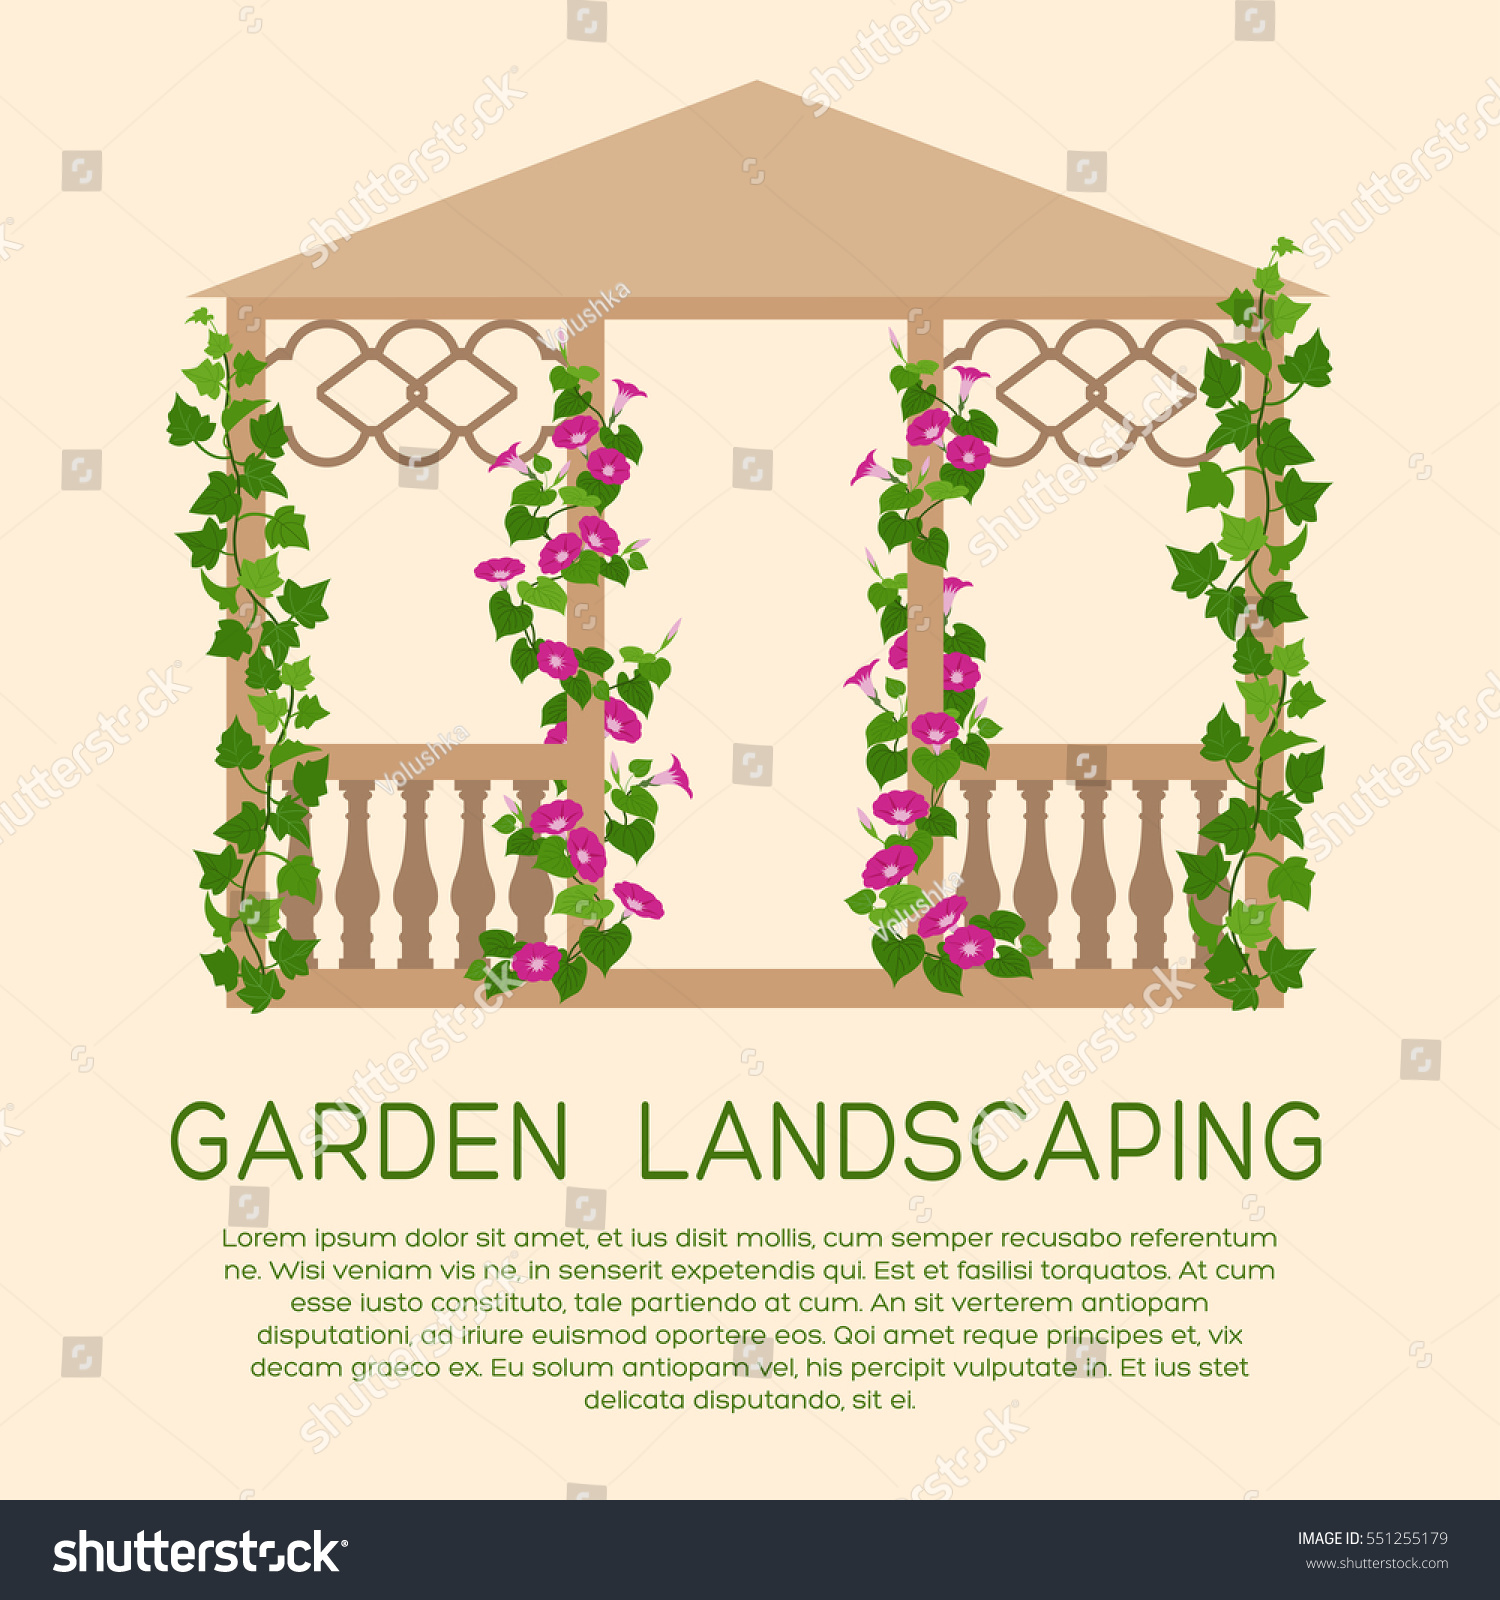 Vertical Garden Design With Gazebo Installation Garden wooden pavilion. Element of landscape design. Colored gardening icon  with text. Illustration of vertical gardening by climbing plants in flat  style.